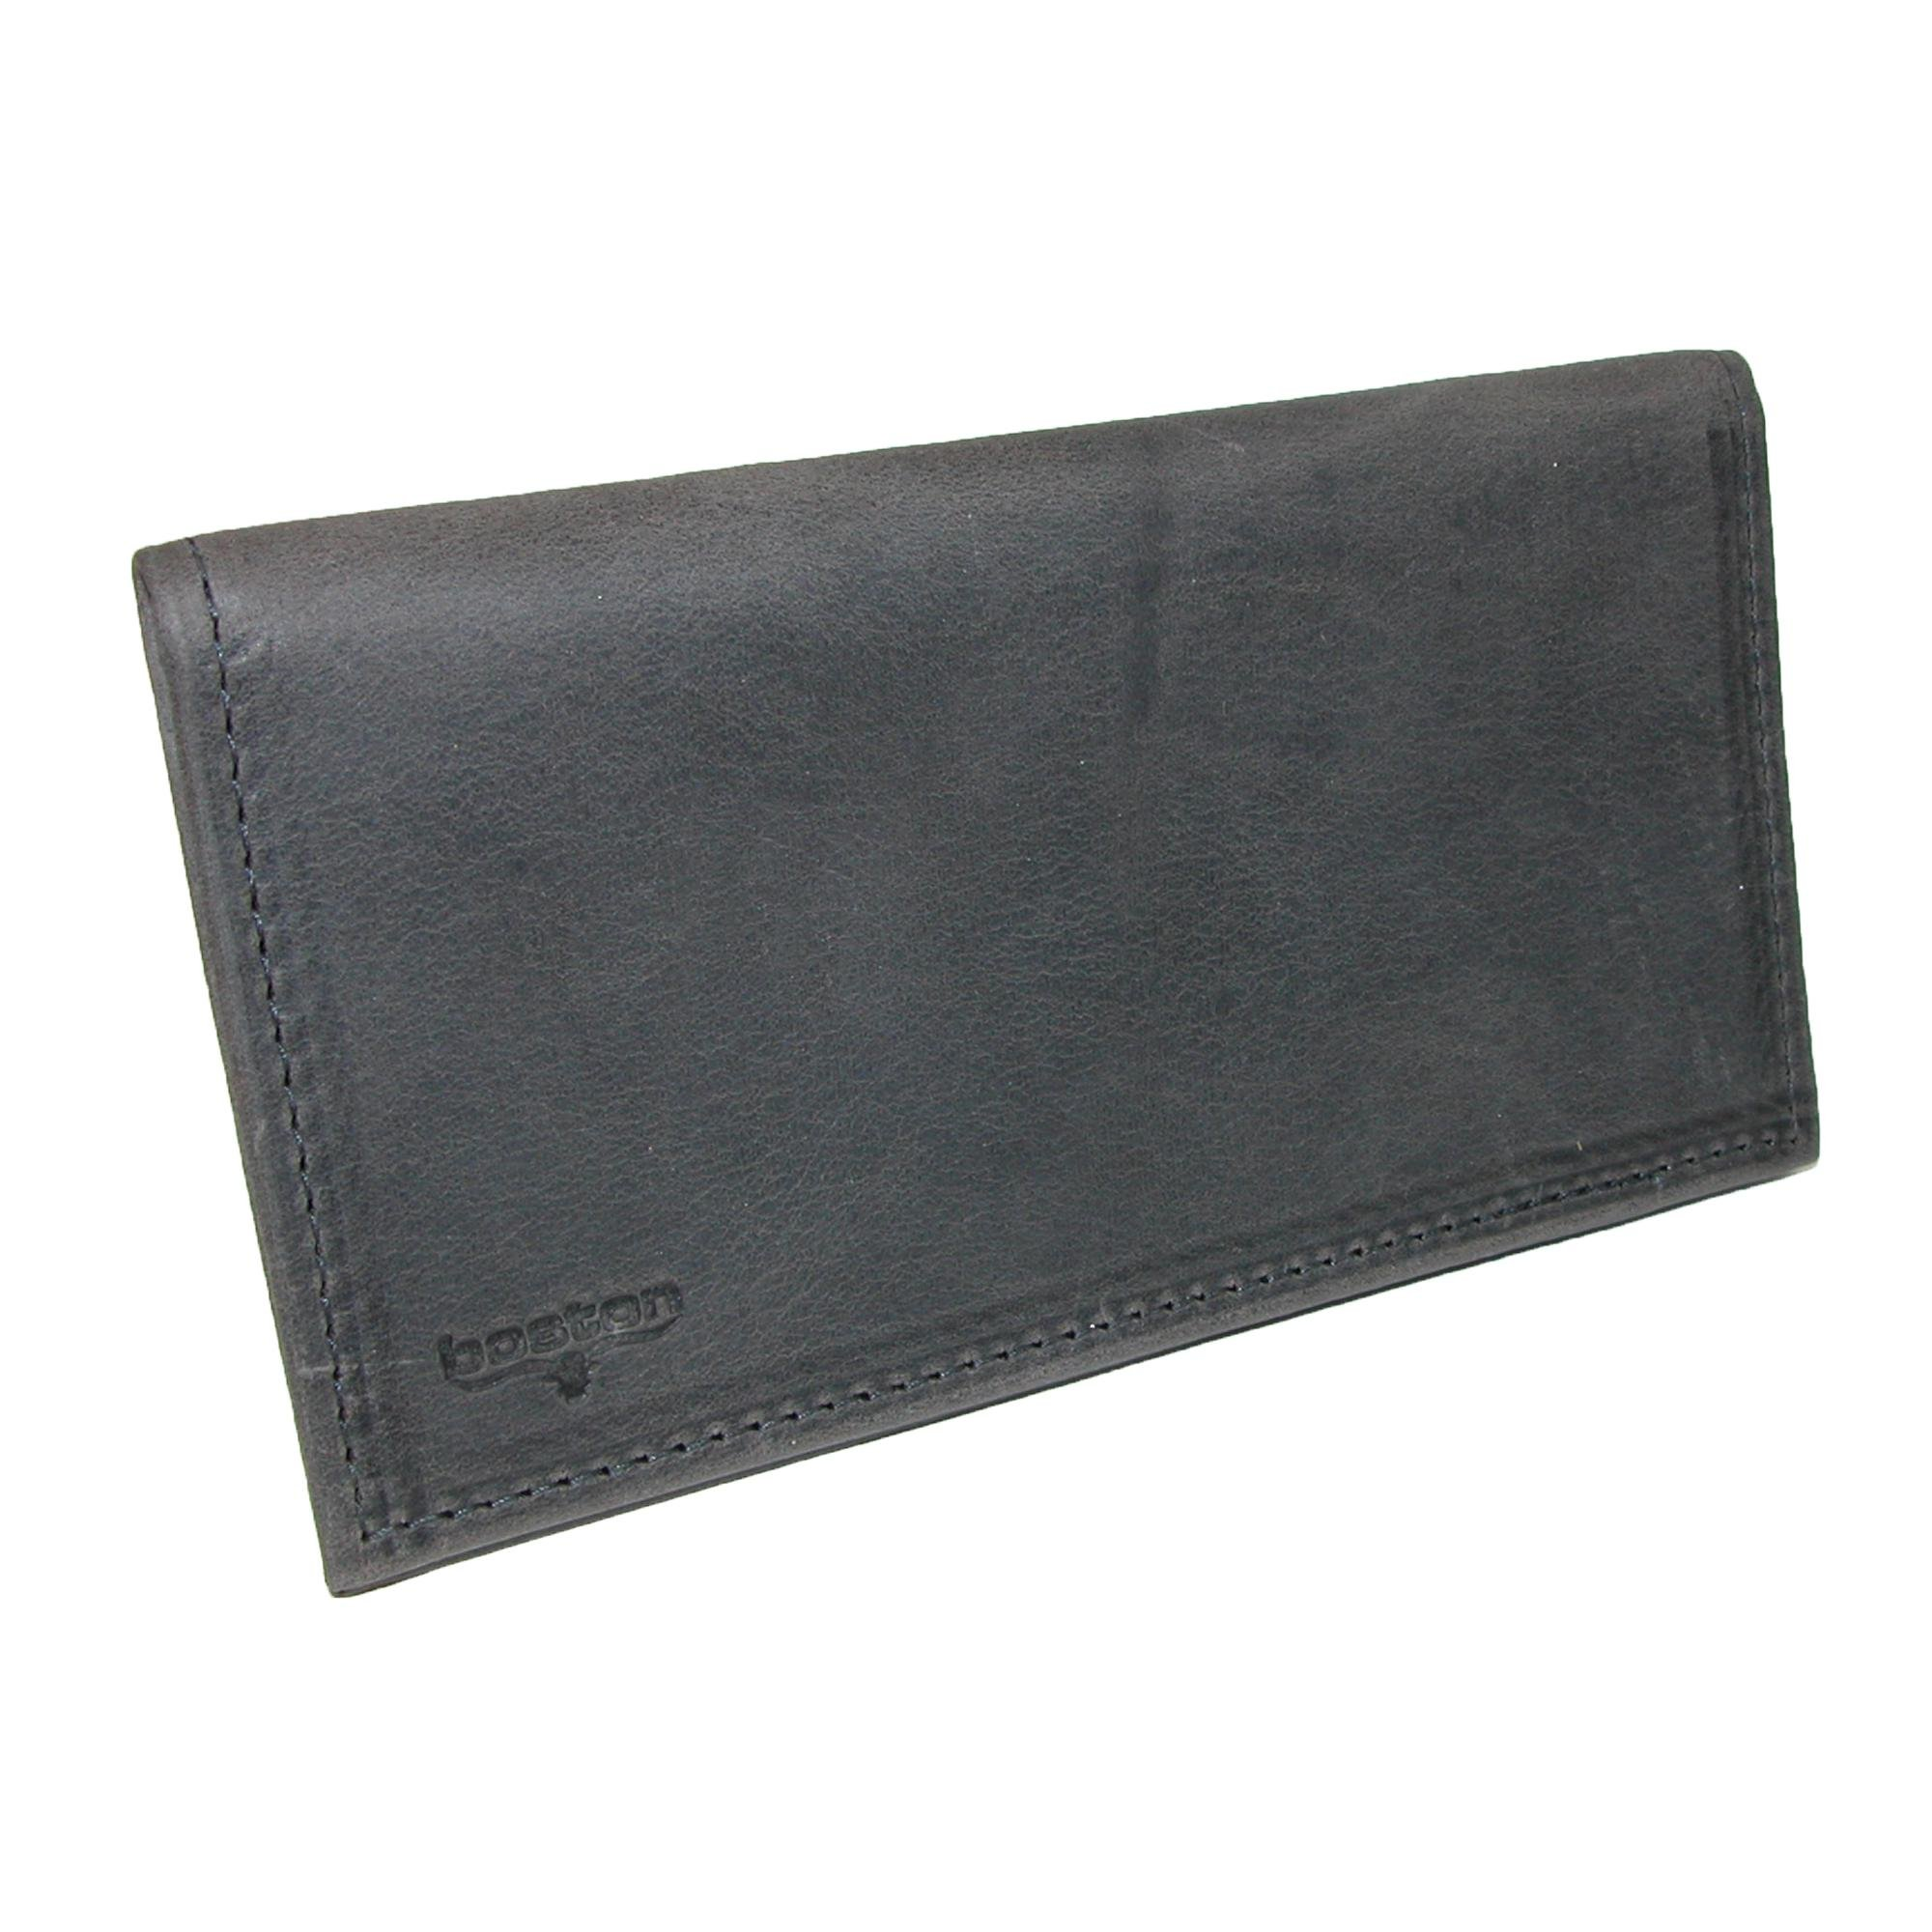 Boston Leather Distressed Leather Checkbook Cover, Dark Grey by Boston Leather